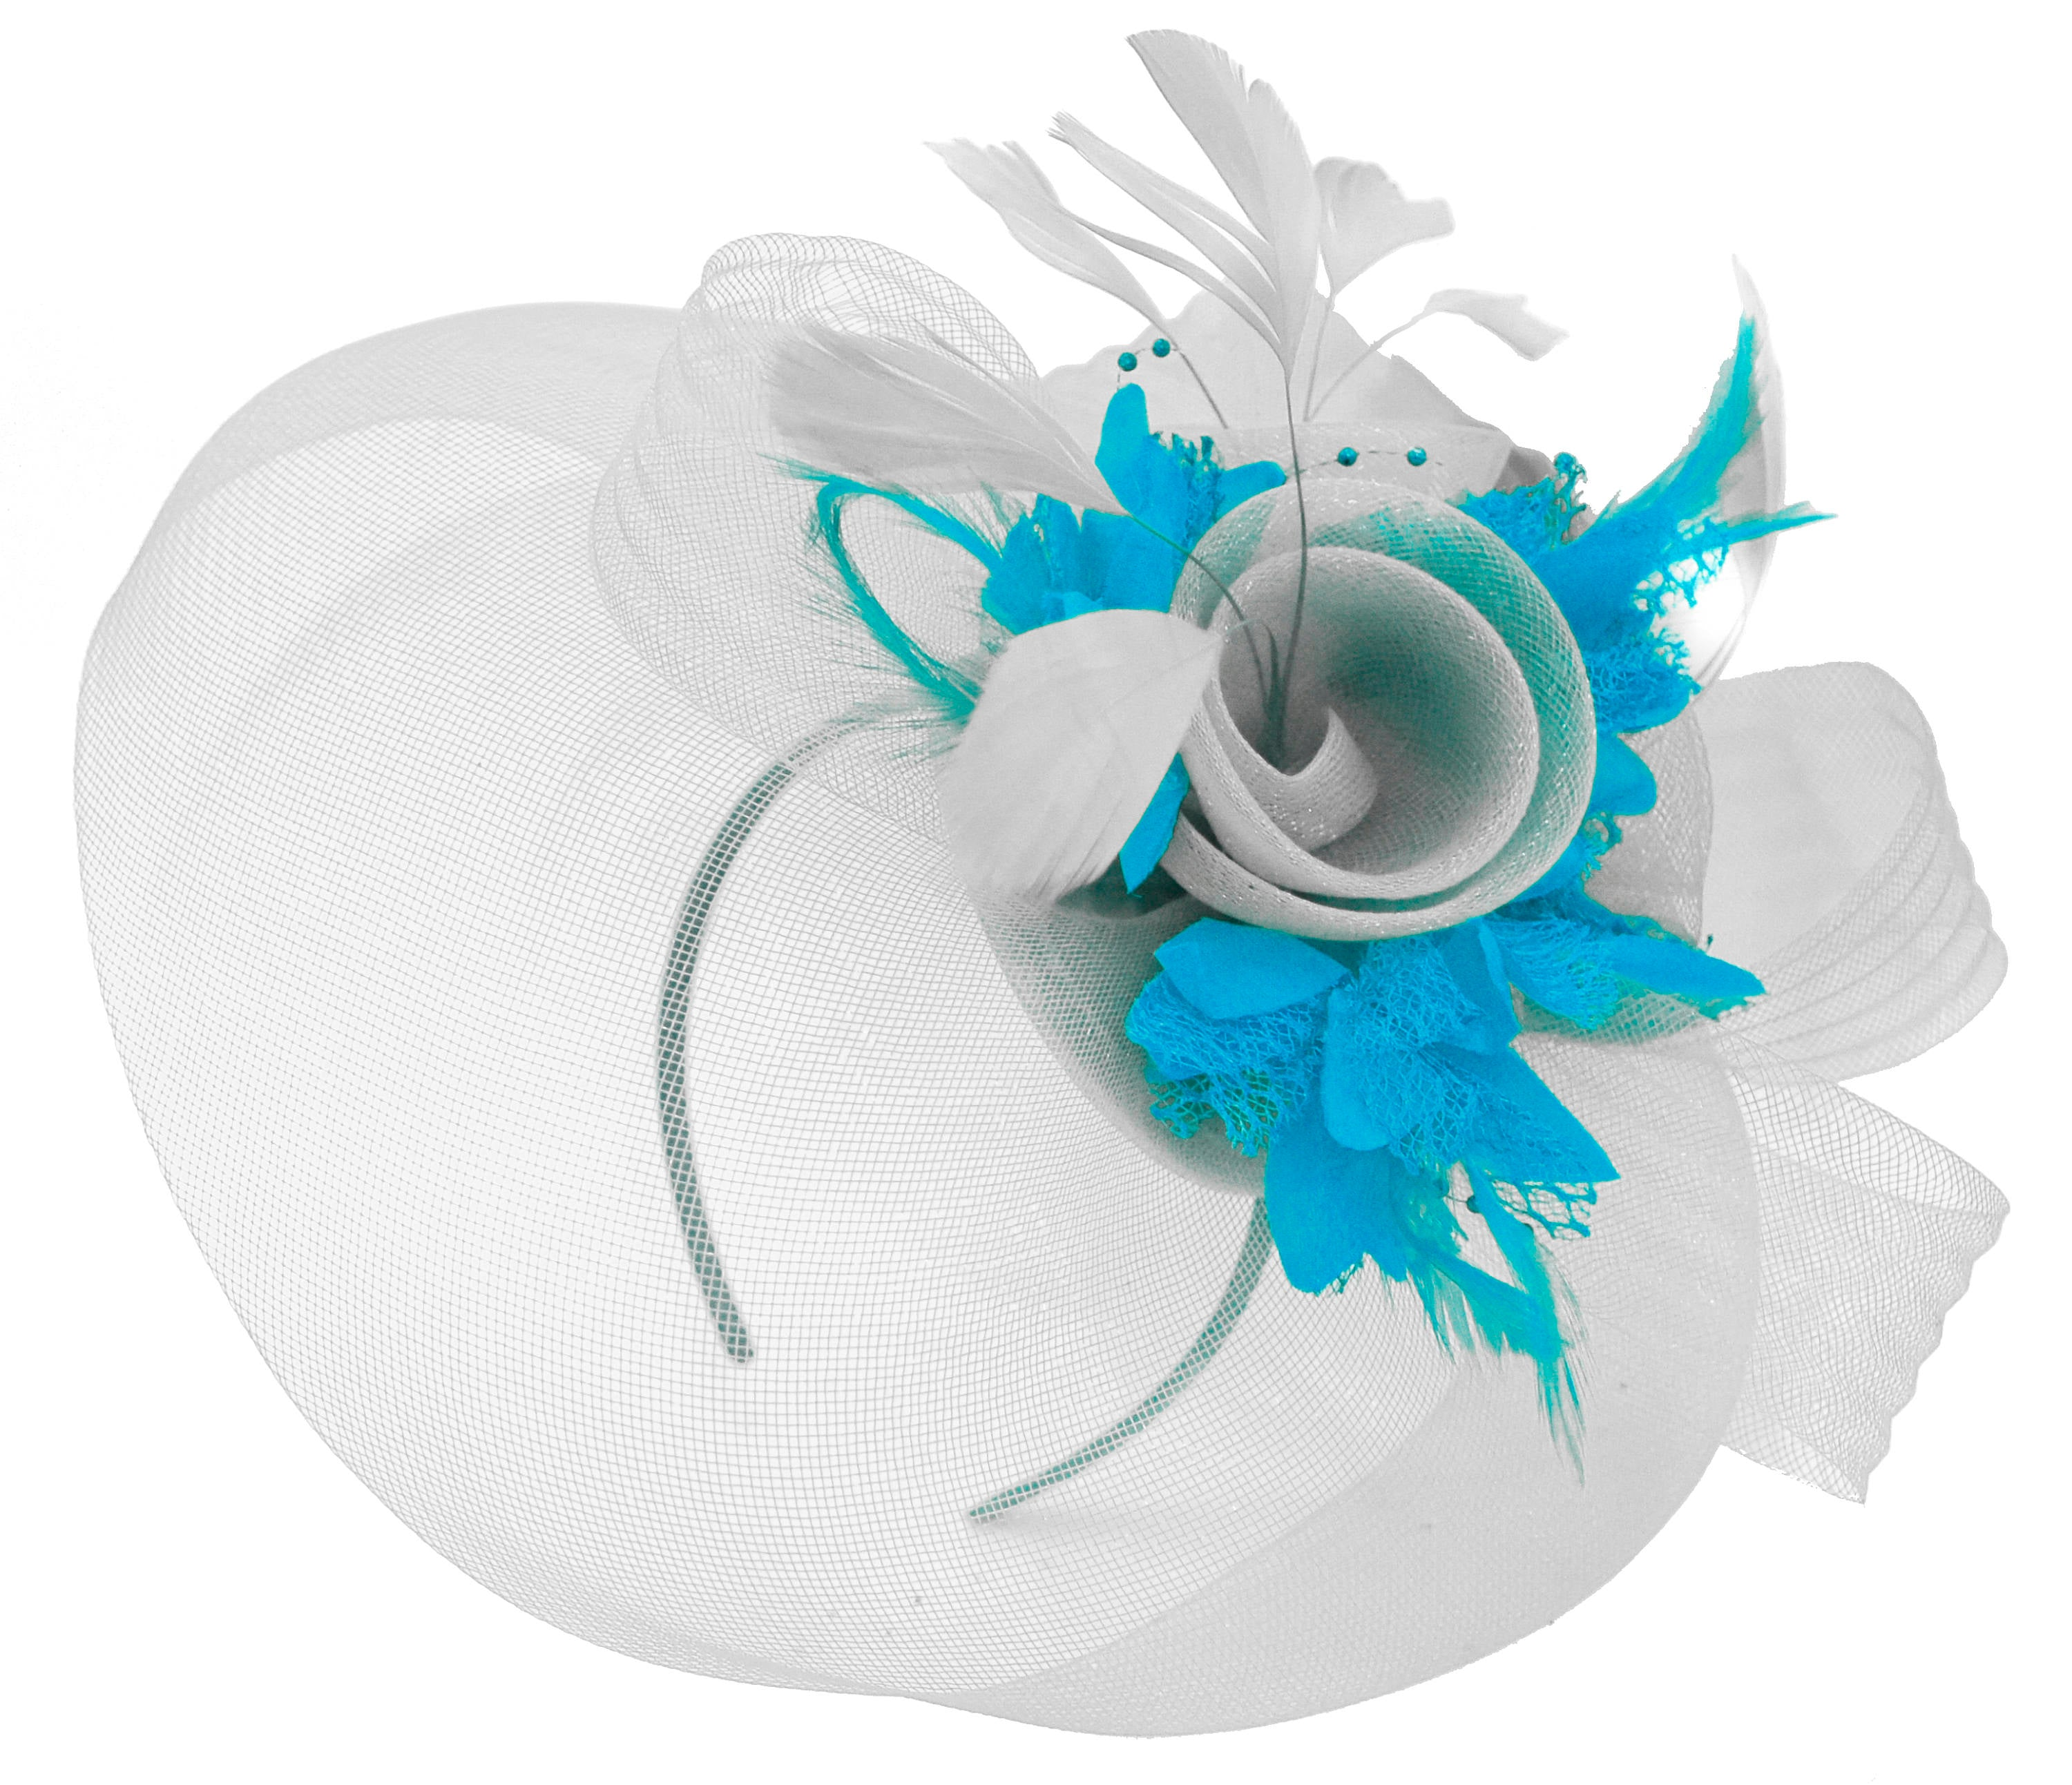 Caprilite Grey Silver and Aqua Fascinator on Headband Veil UK Wedding Ascot Races Hatinator